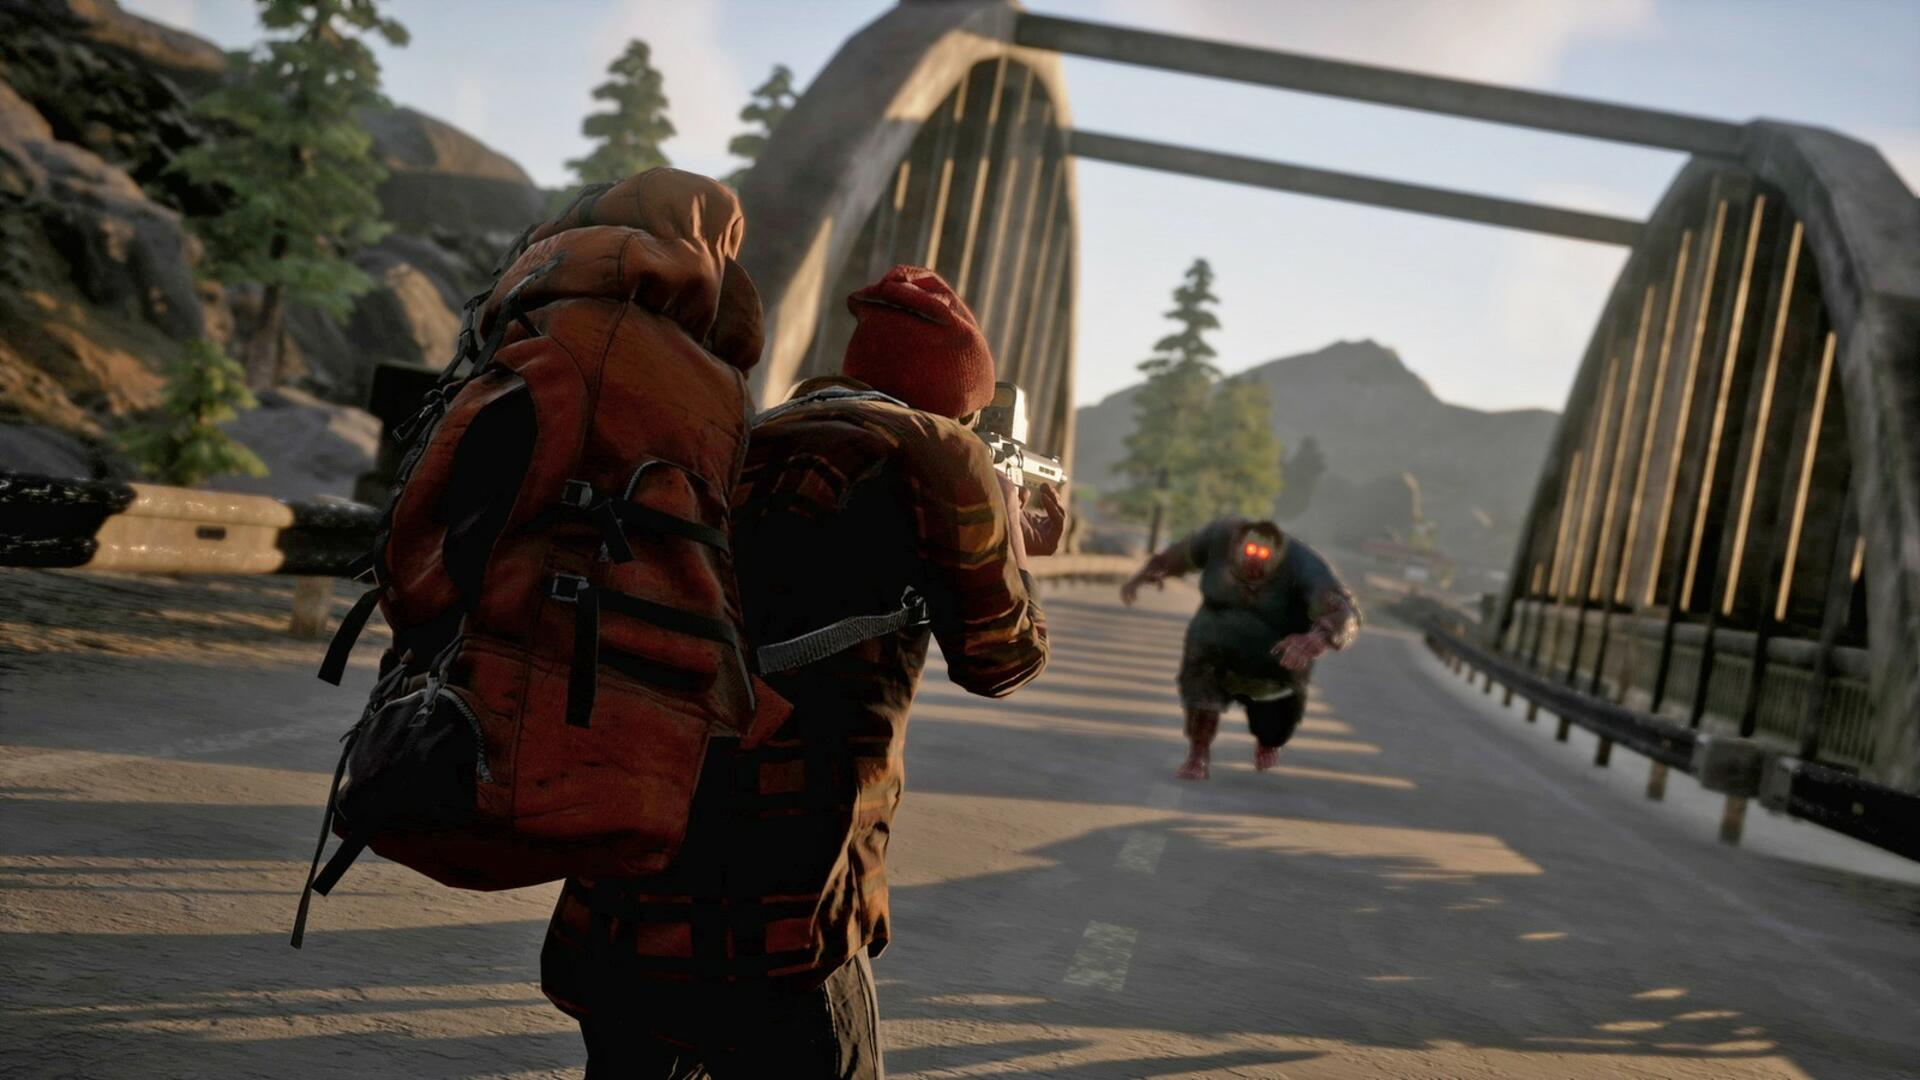 State of Decay 2 Multiplayer - How to Play Coop, Private Games, How to Join Friends